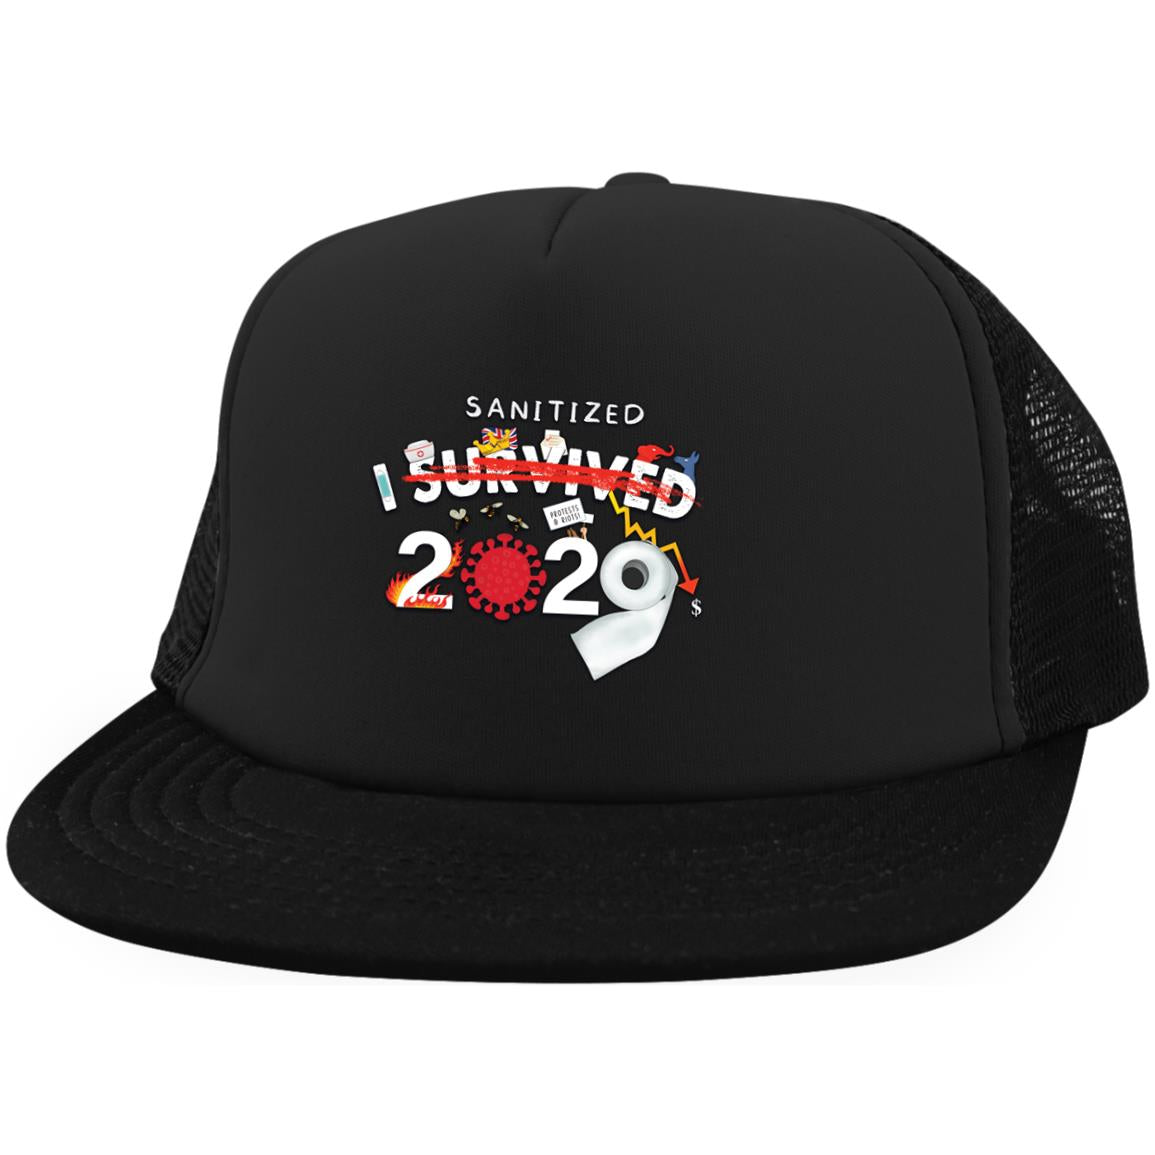 I Sanitized 2020 - Trucker Hat with Snapback